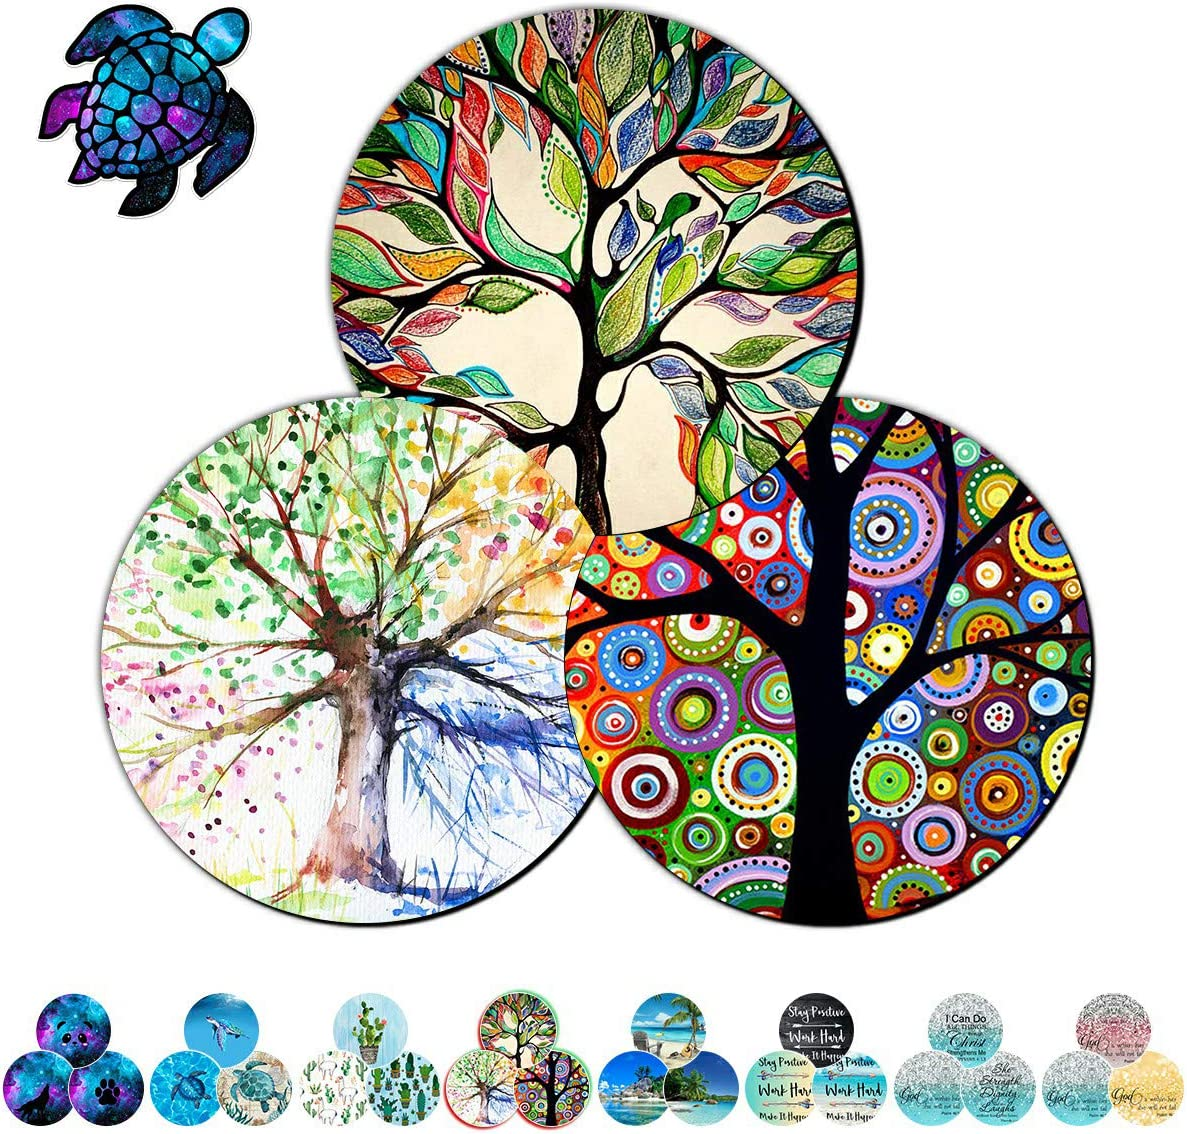 Gaming Mouse Pad Mat for Laptop 3 Pack Tree of Life Mousepads with Cute Stickers Non-Slip Rubber Base Round Mouse Pads for Laptop Compute Working Home Office Accessories